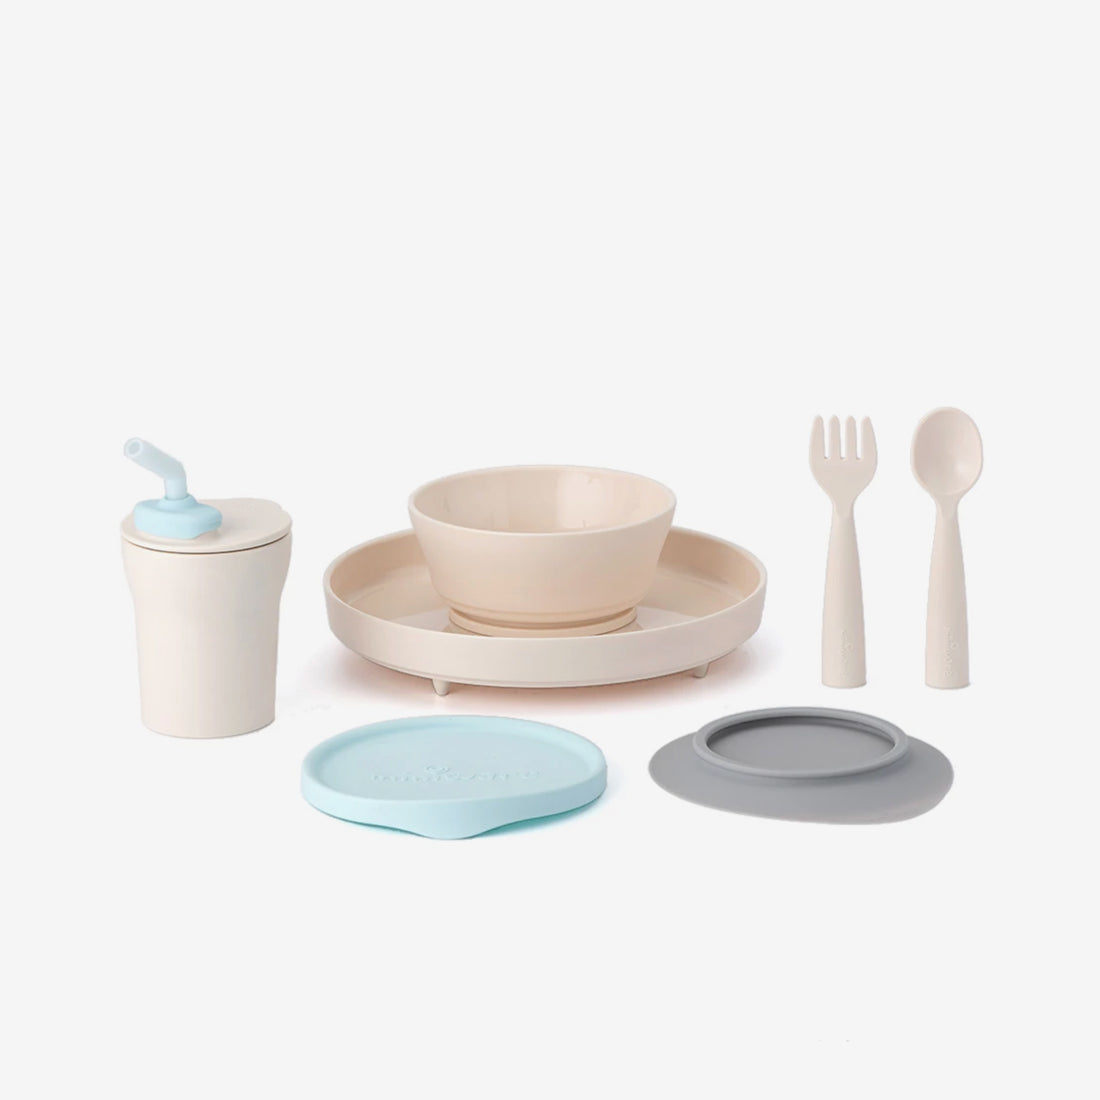 Little Foodie PLA 7-Piece Set - Aqua